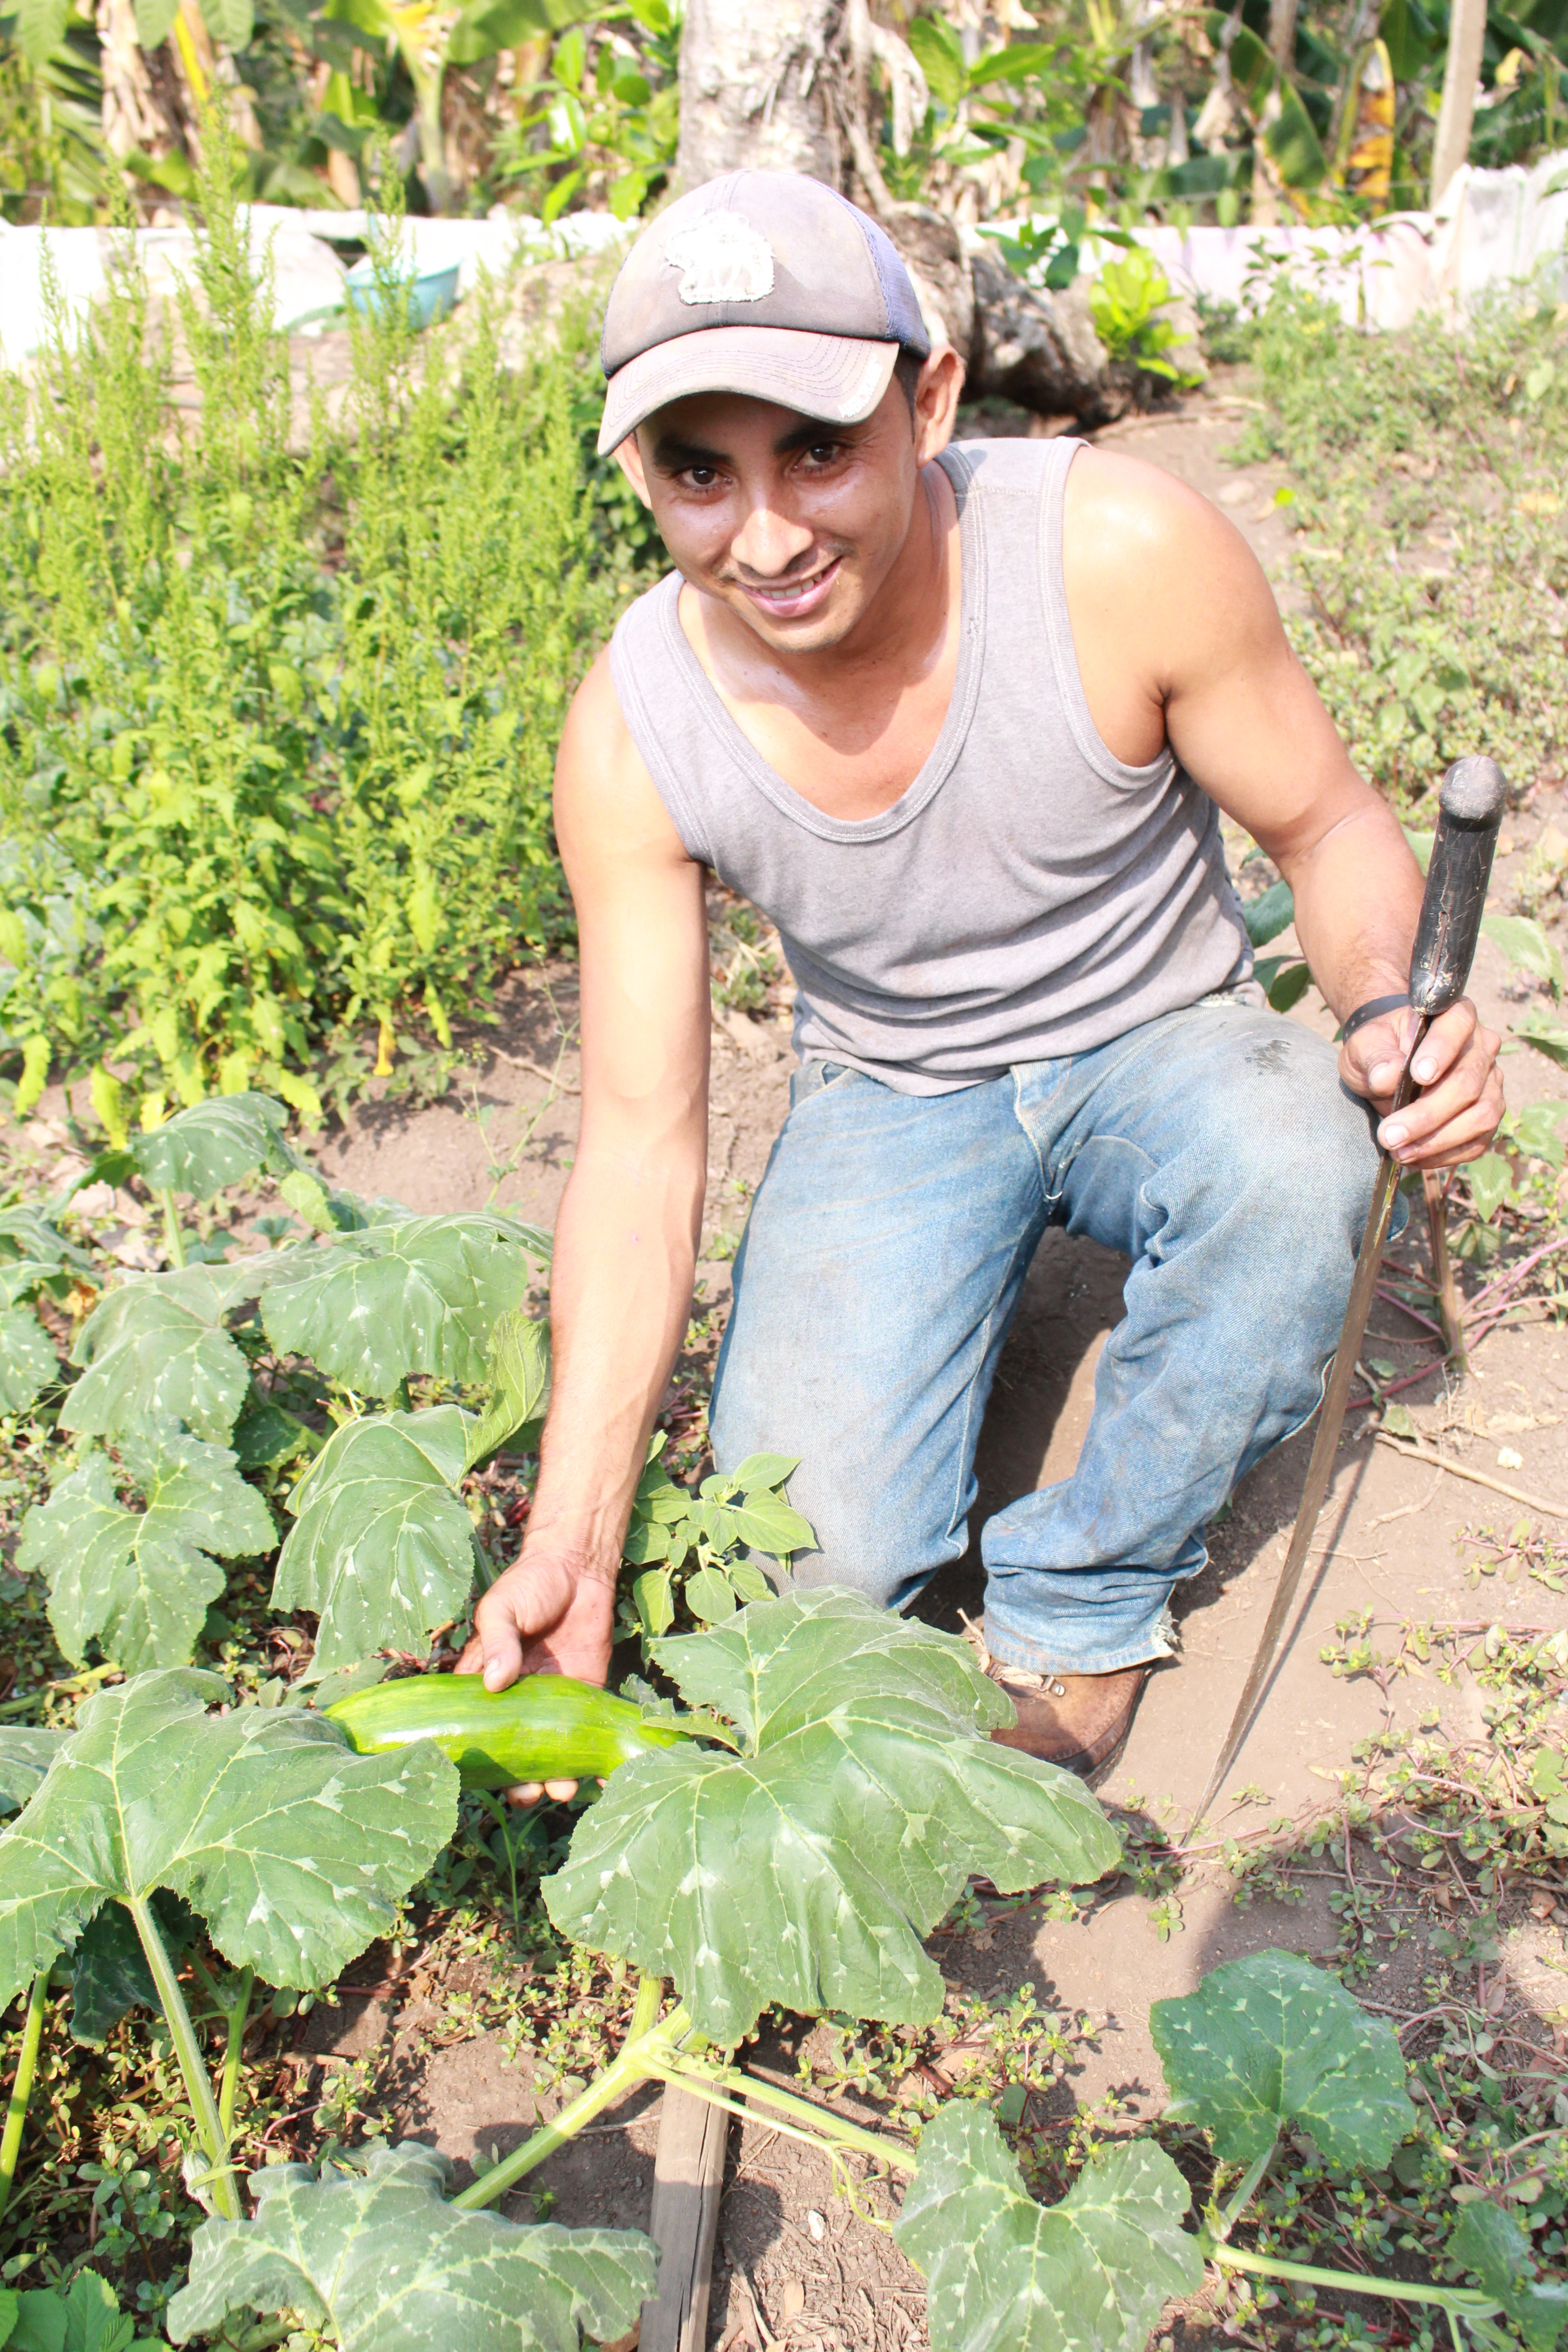 Yorbin shows off a growing squash, amid a variety of vegetables that will help better nourish and sustain his family.